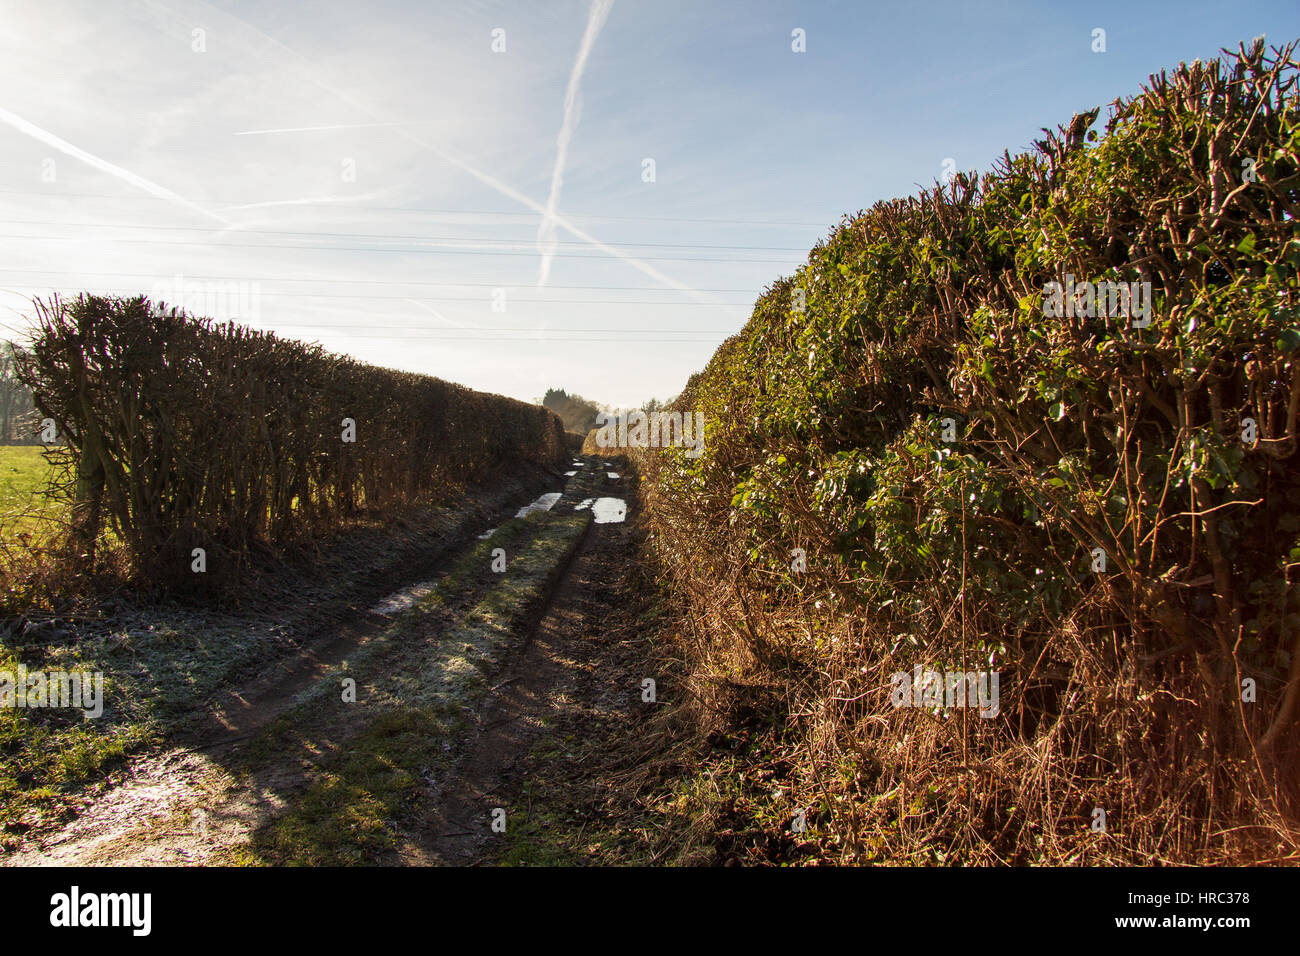 Muddy country path with hedges on both sides Stock Photo